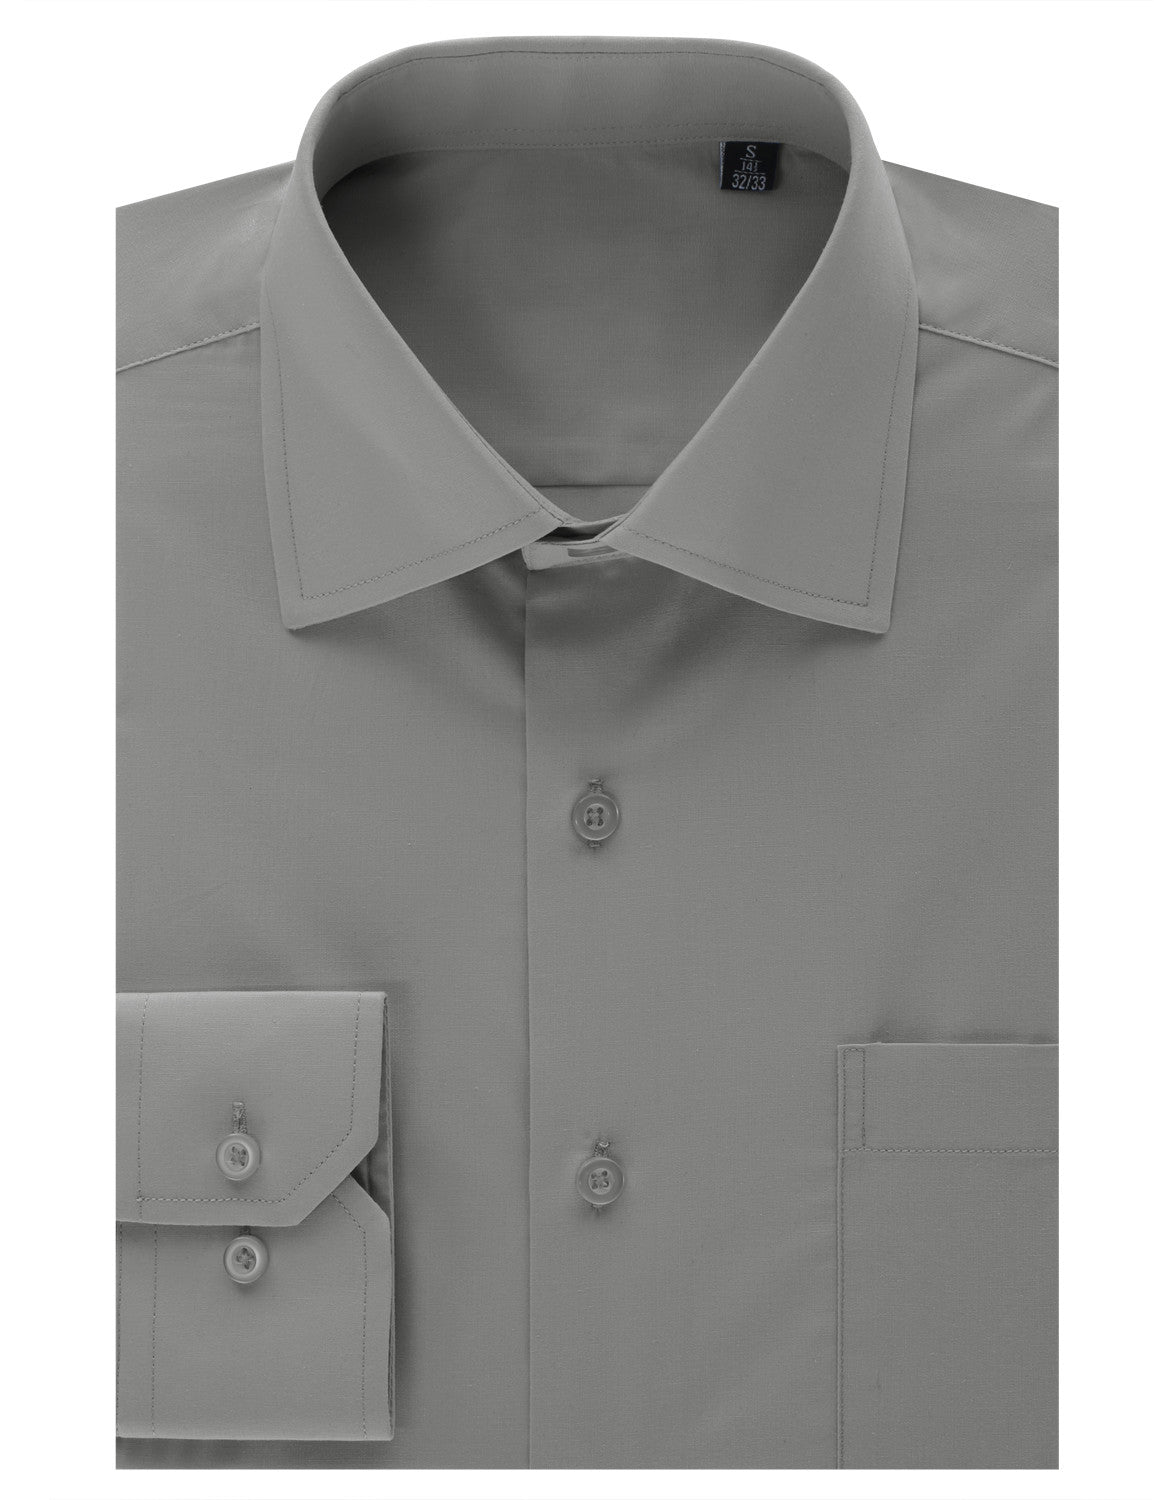 TC29LIGHTGRAY Light Gray Regular Fit Dress Shirt w/ Reversible Cuff (Big & Tall Available)- MONDAYSUIT